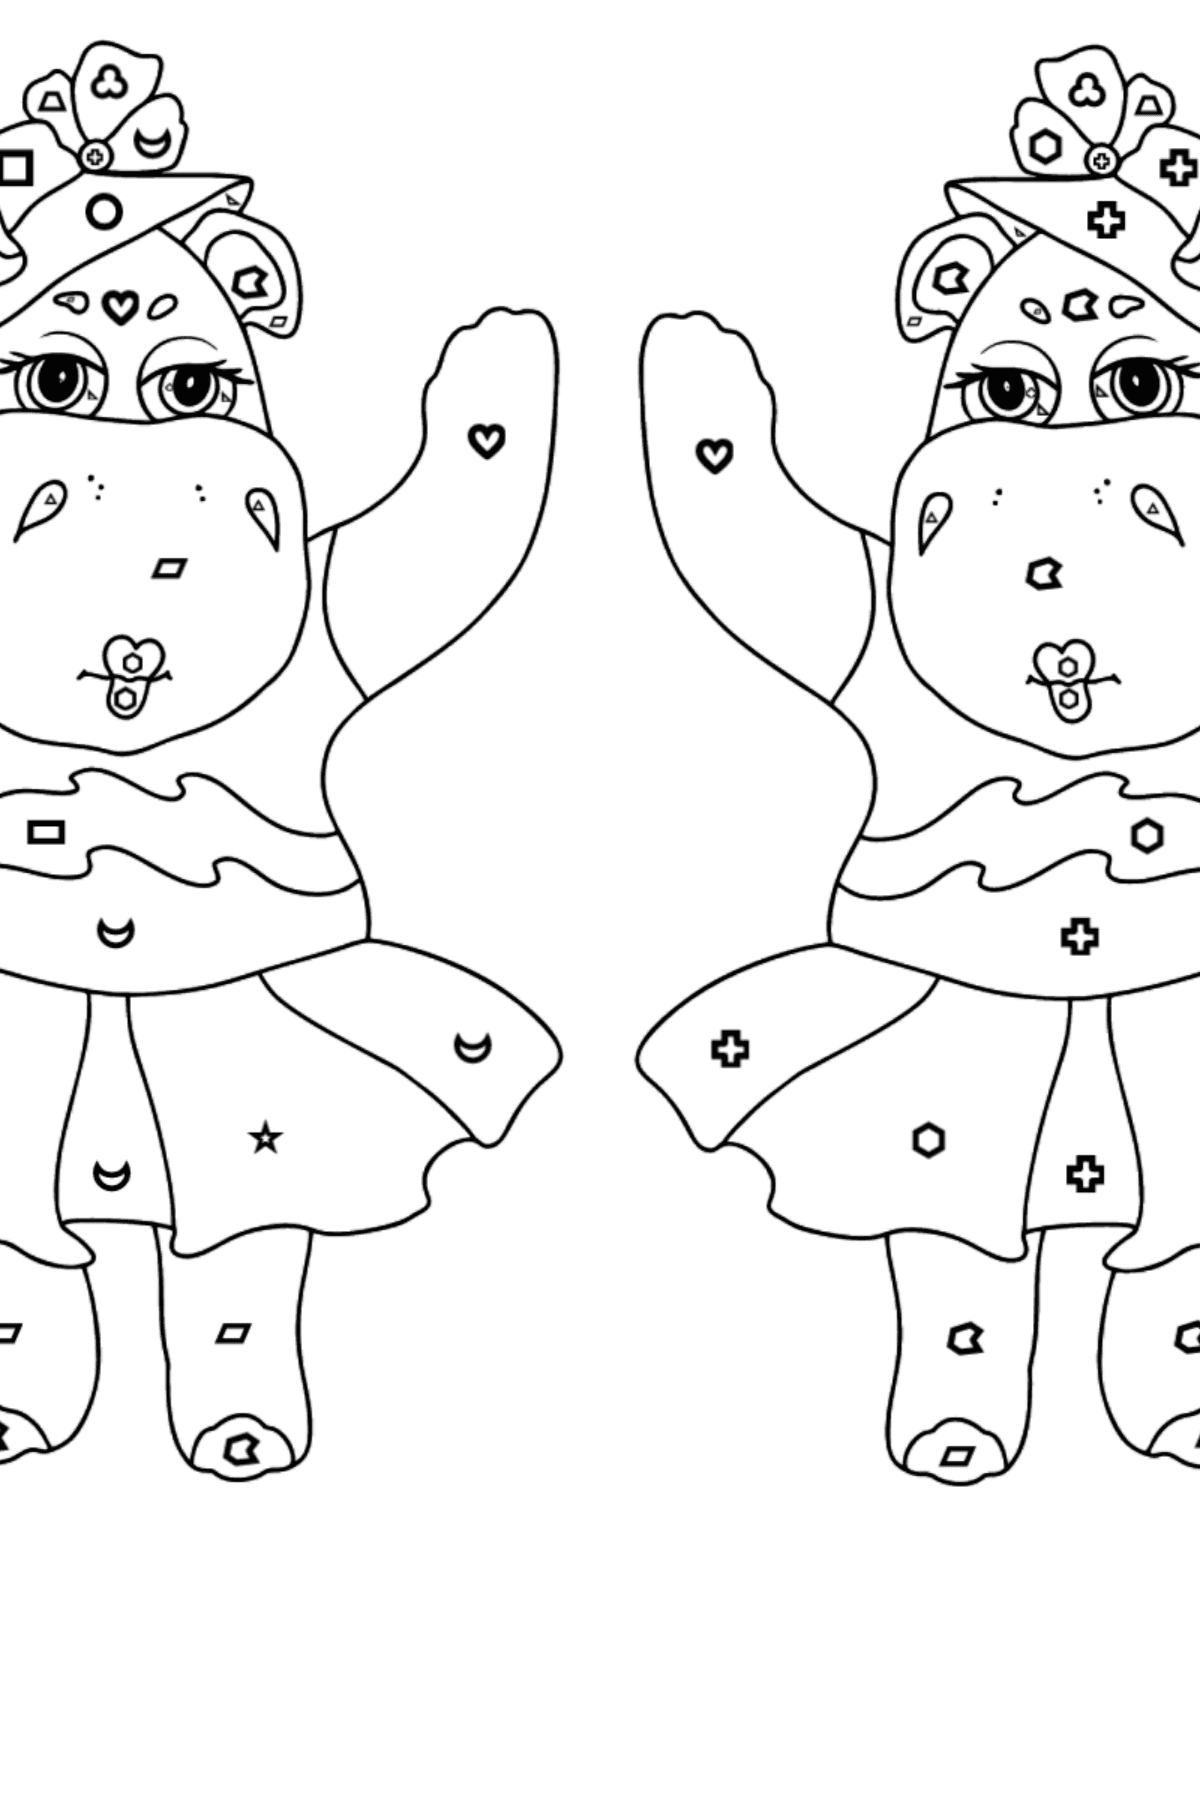 Coloring Page - Hippos are Harvesting the Crops - Coloring by Geometric Shapes for Kids